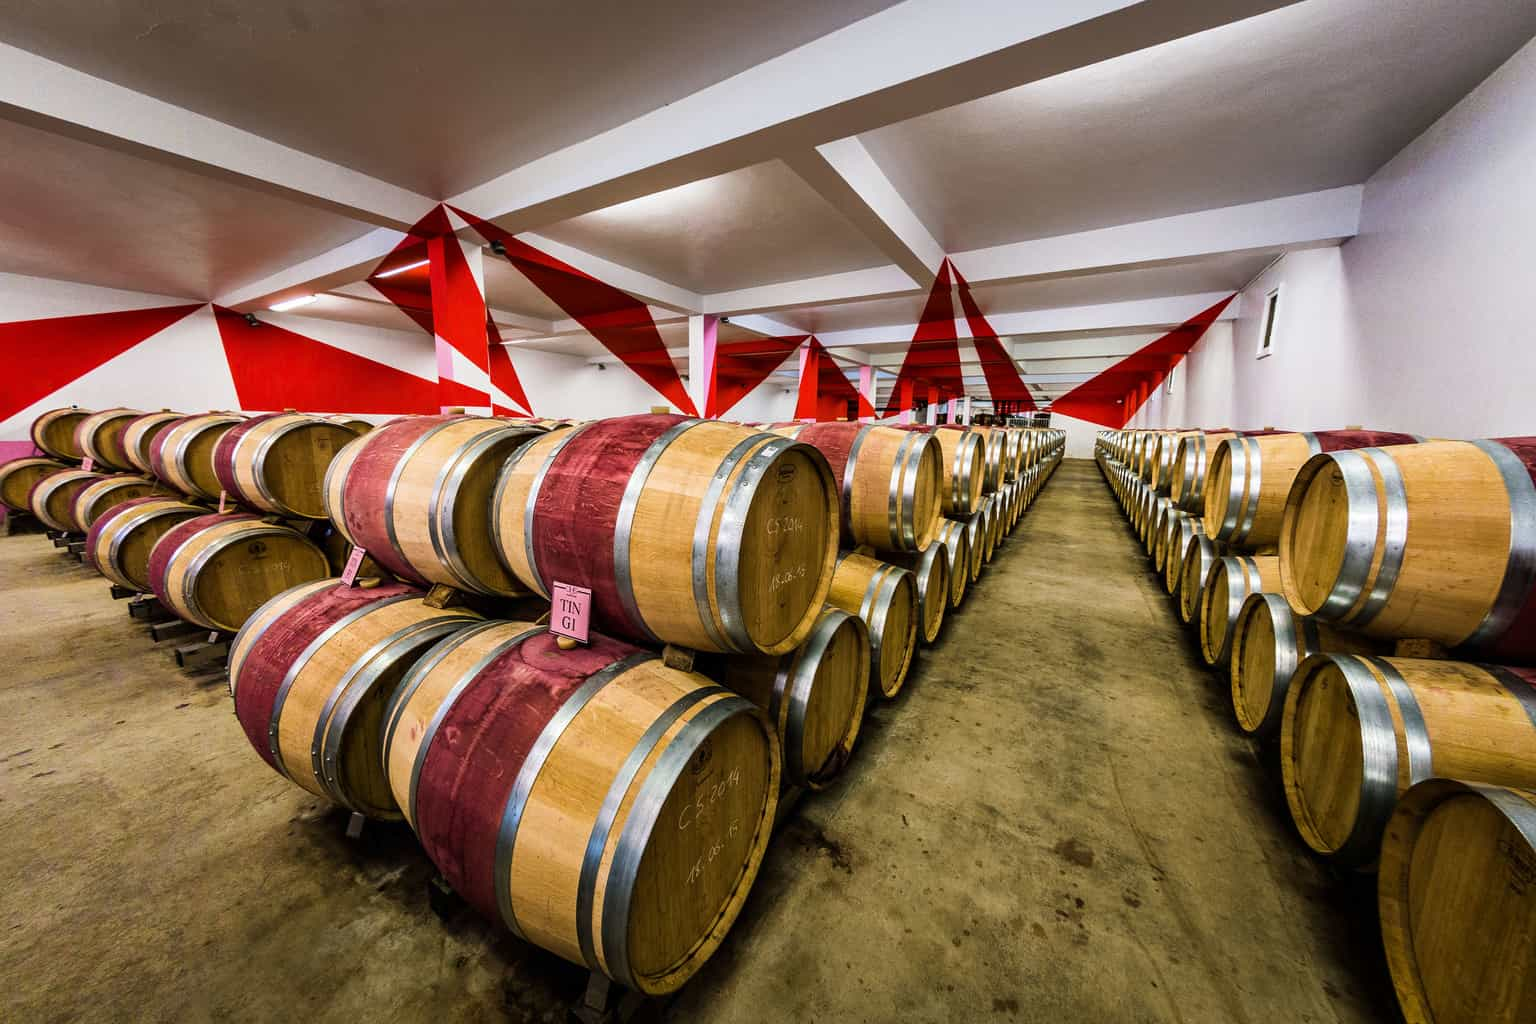 Barrels of wine maturing, Bordeaux, France, by industrial photographer Rick McEvoy